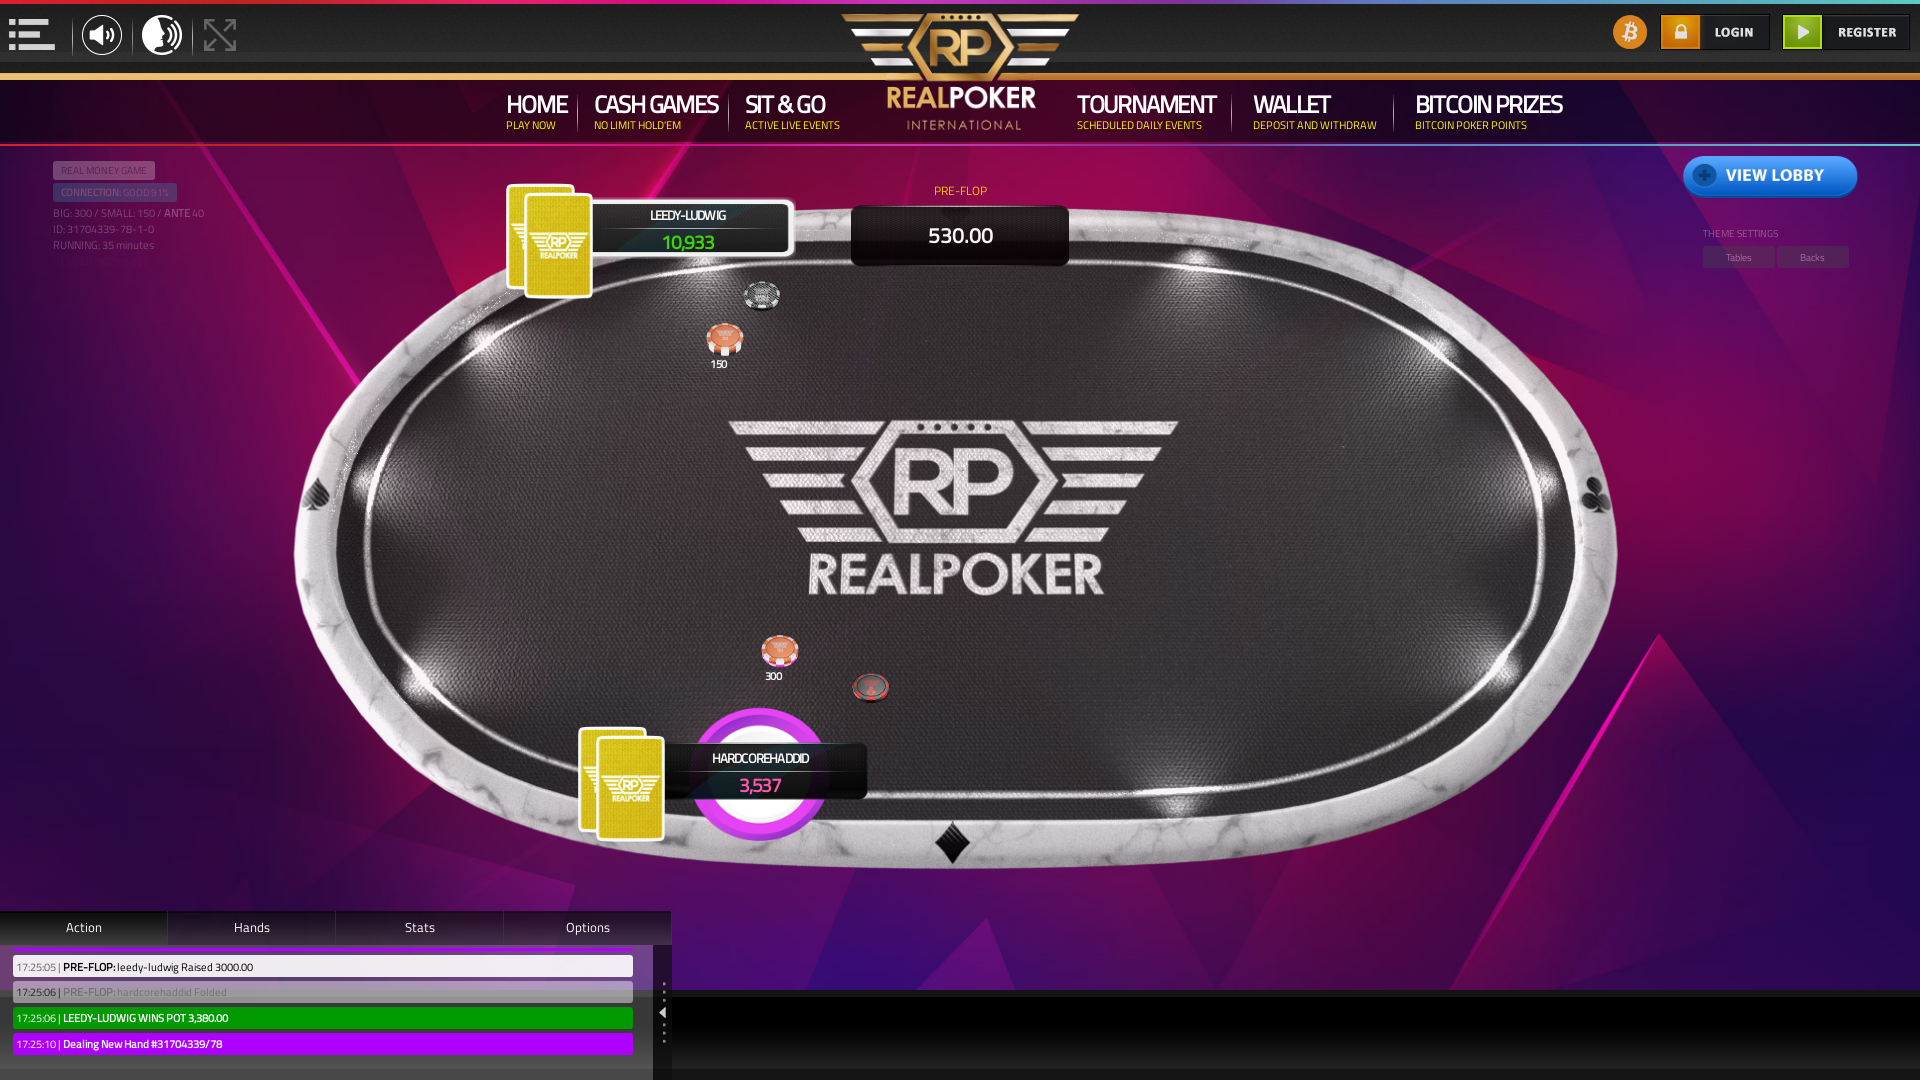 10 player texas holdem table at real poker with the table id 31704339